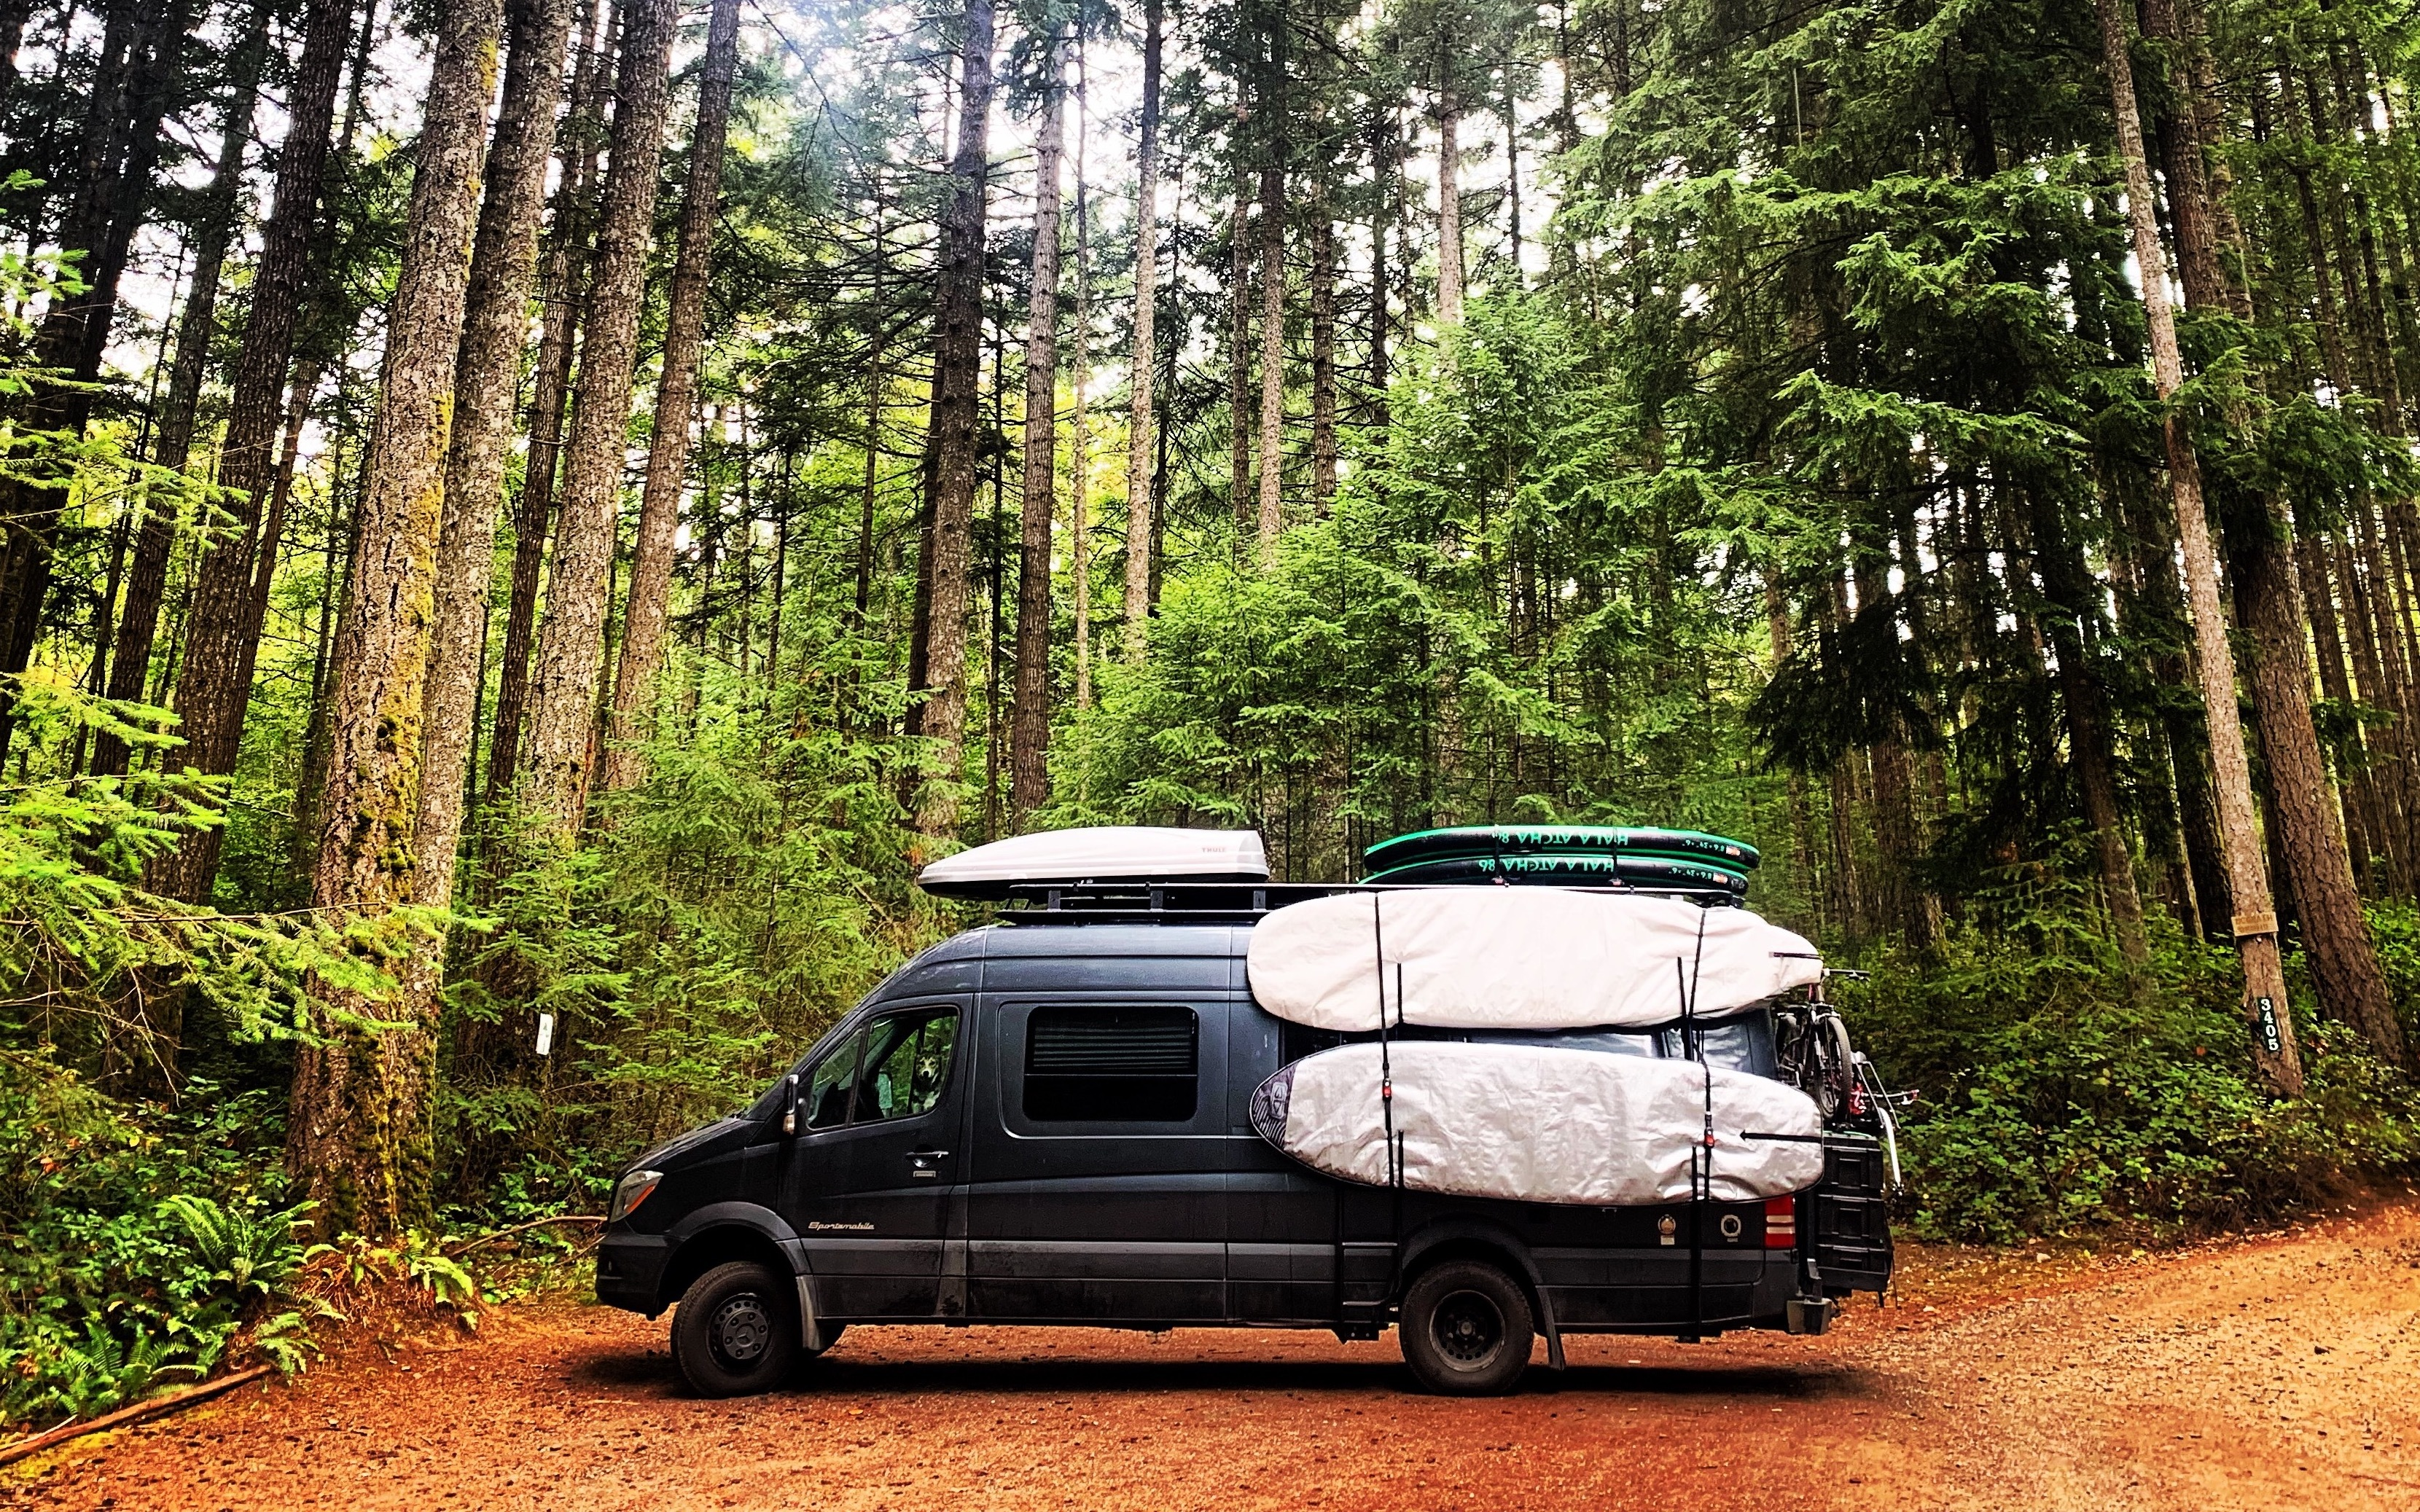 A Mercedes-Benz Sprinter van with surfboards on the side sits in an old-growth forest in Vancouver Island, British Columbia.